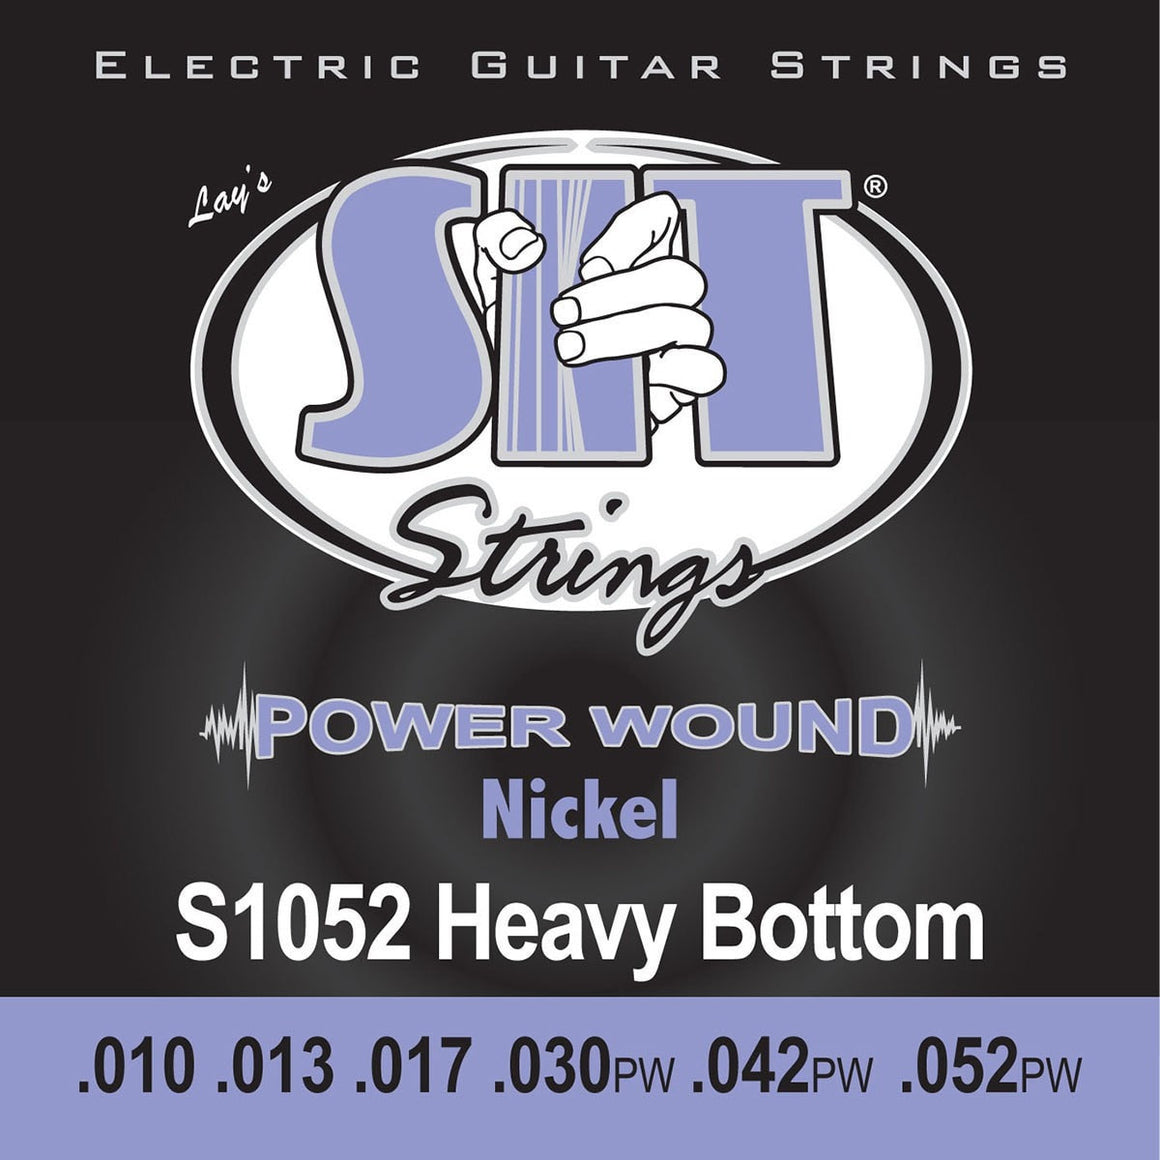 SIT Strings Electric Guitar Strings SIT Power Wound Nickel Heavy Bottom S1052 Electric Guitar Strings